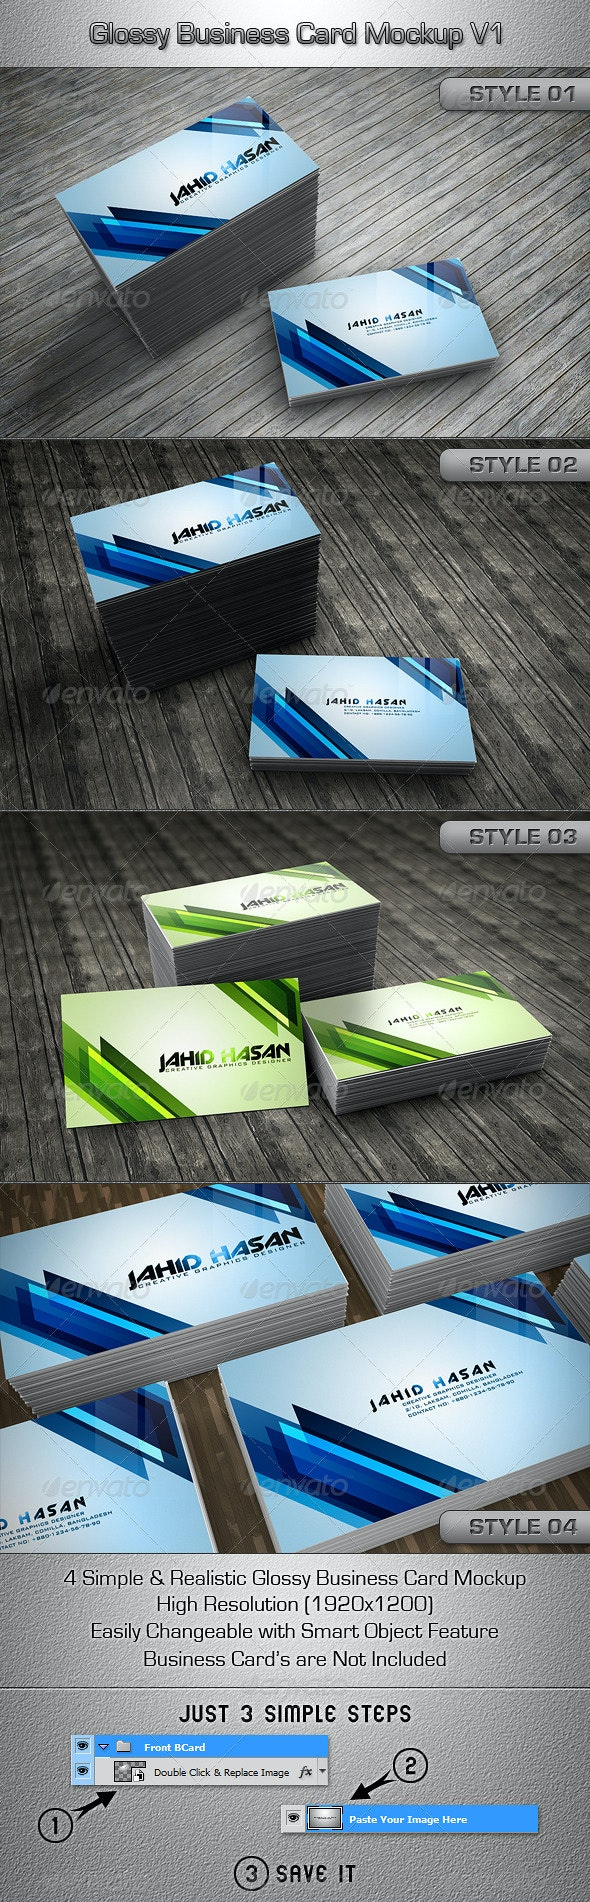 Glossy Business Card MockUp V1 - Business Cards Print